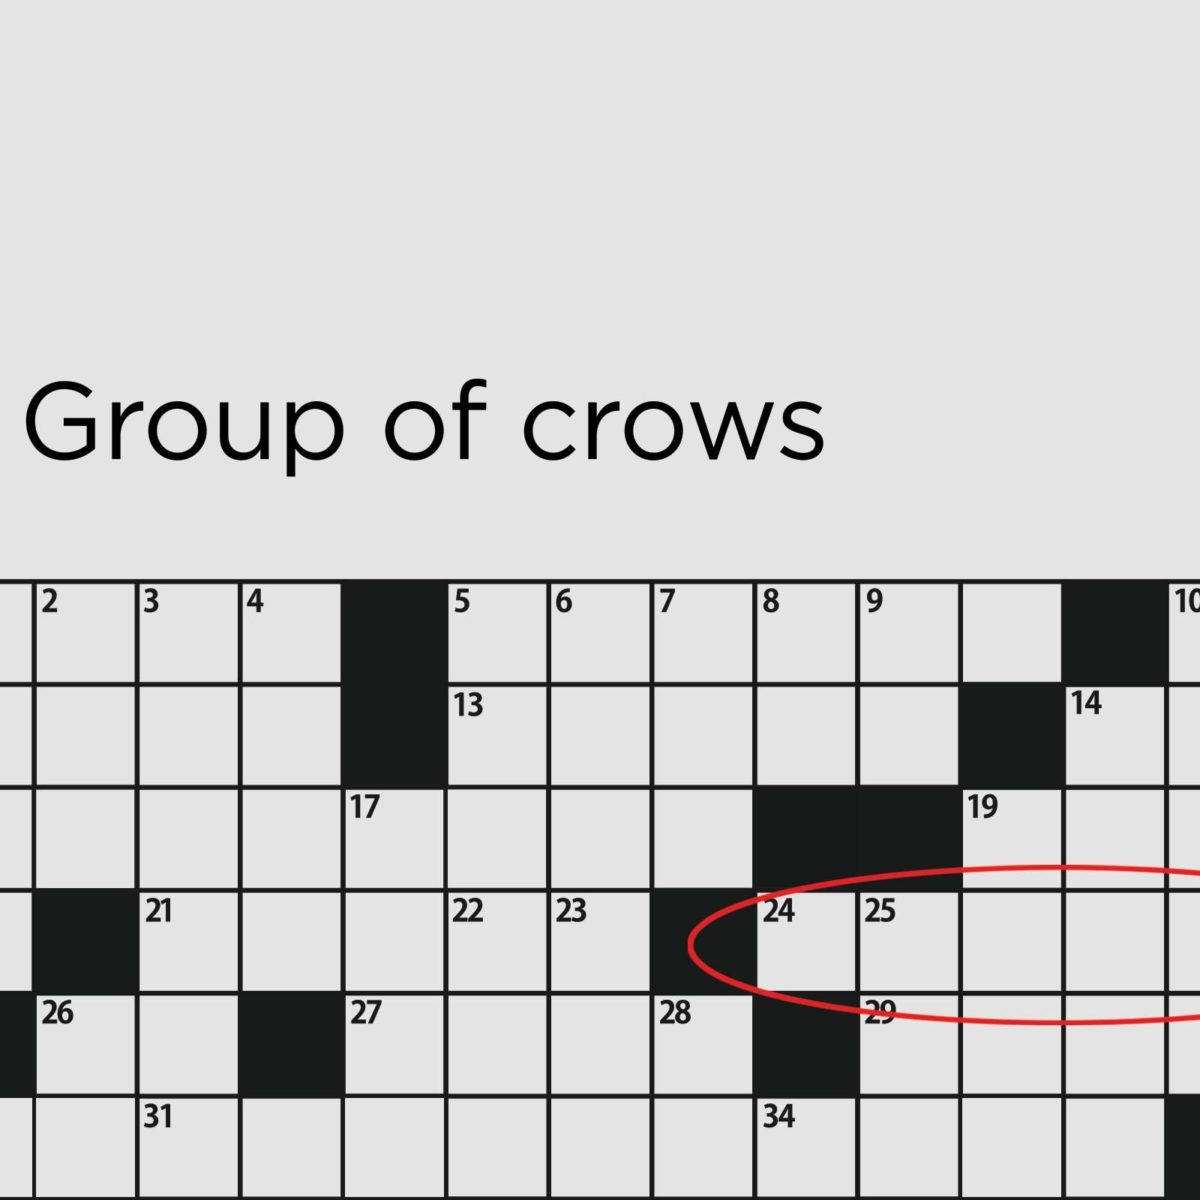 Go to live in a different place crossword clue